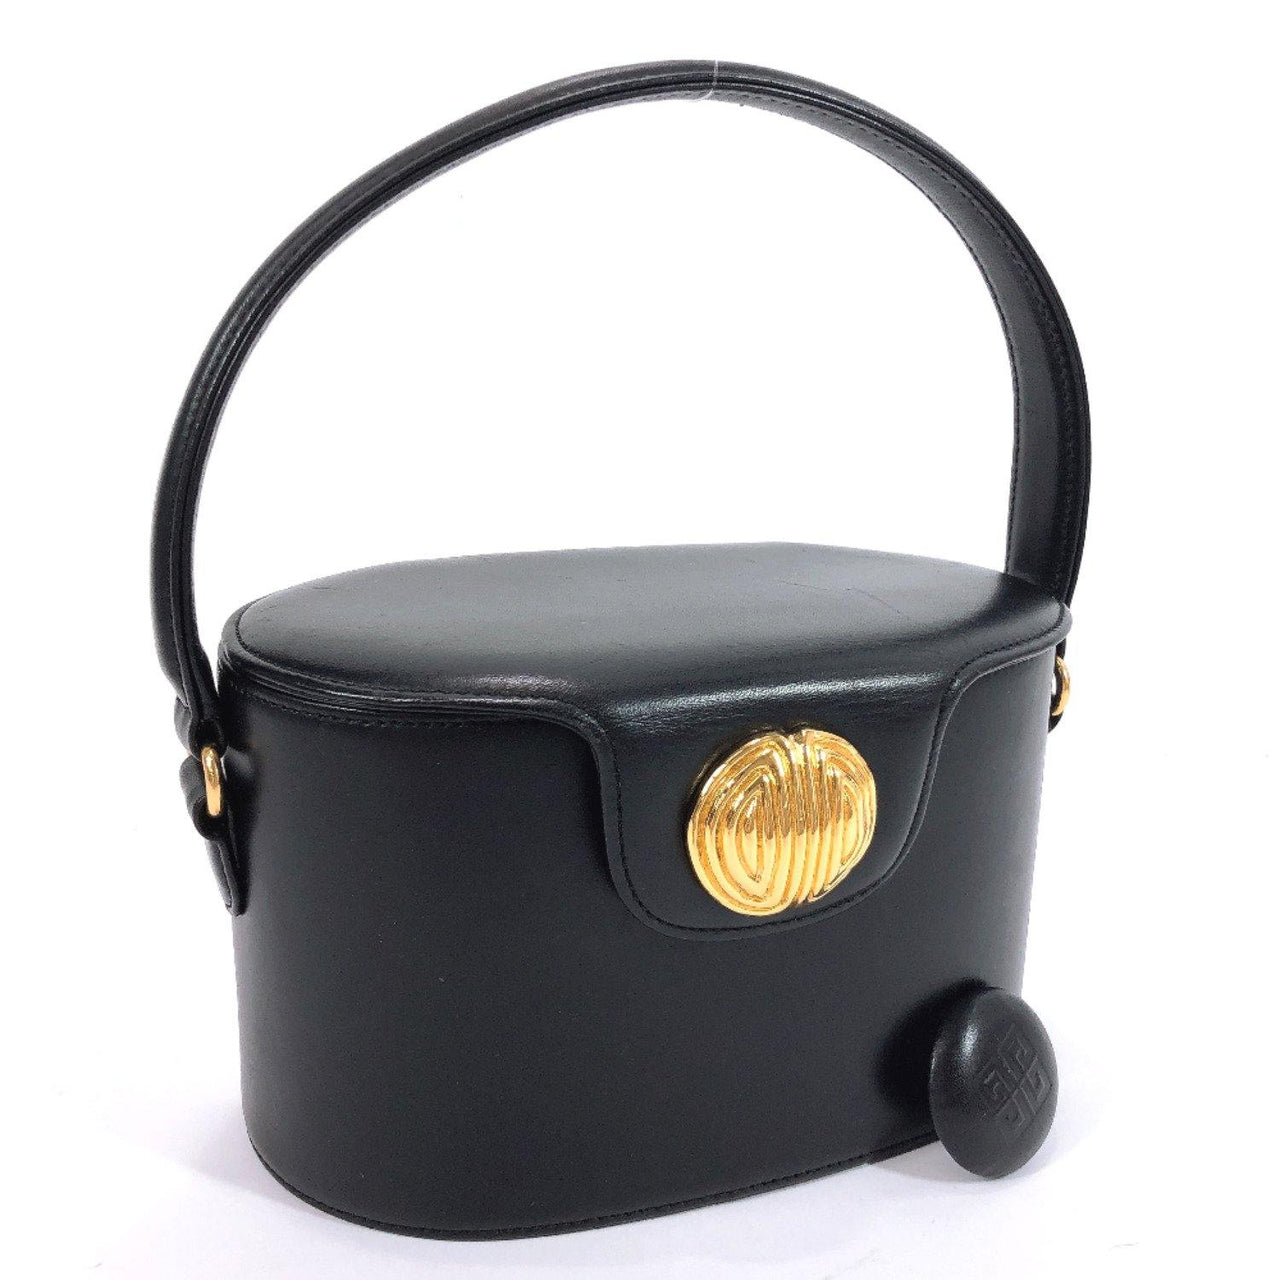 GIVENCHY Handbag Vanity bag leather black Women Used - JP-BRANDS.com